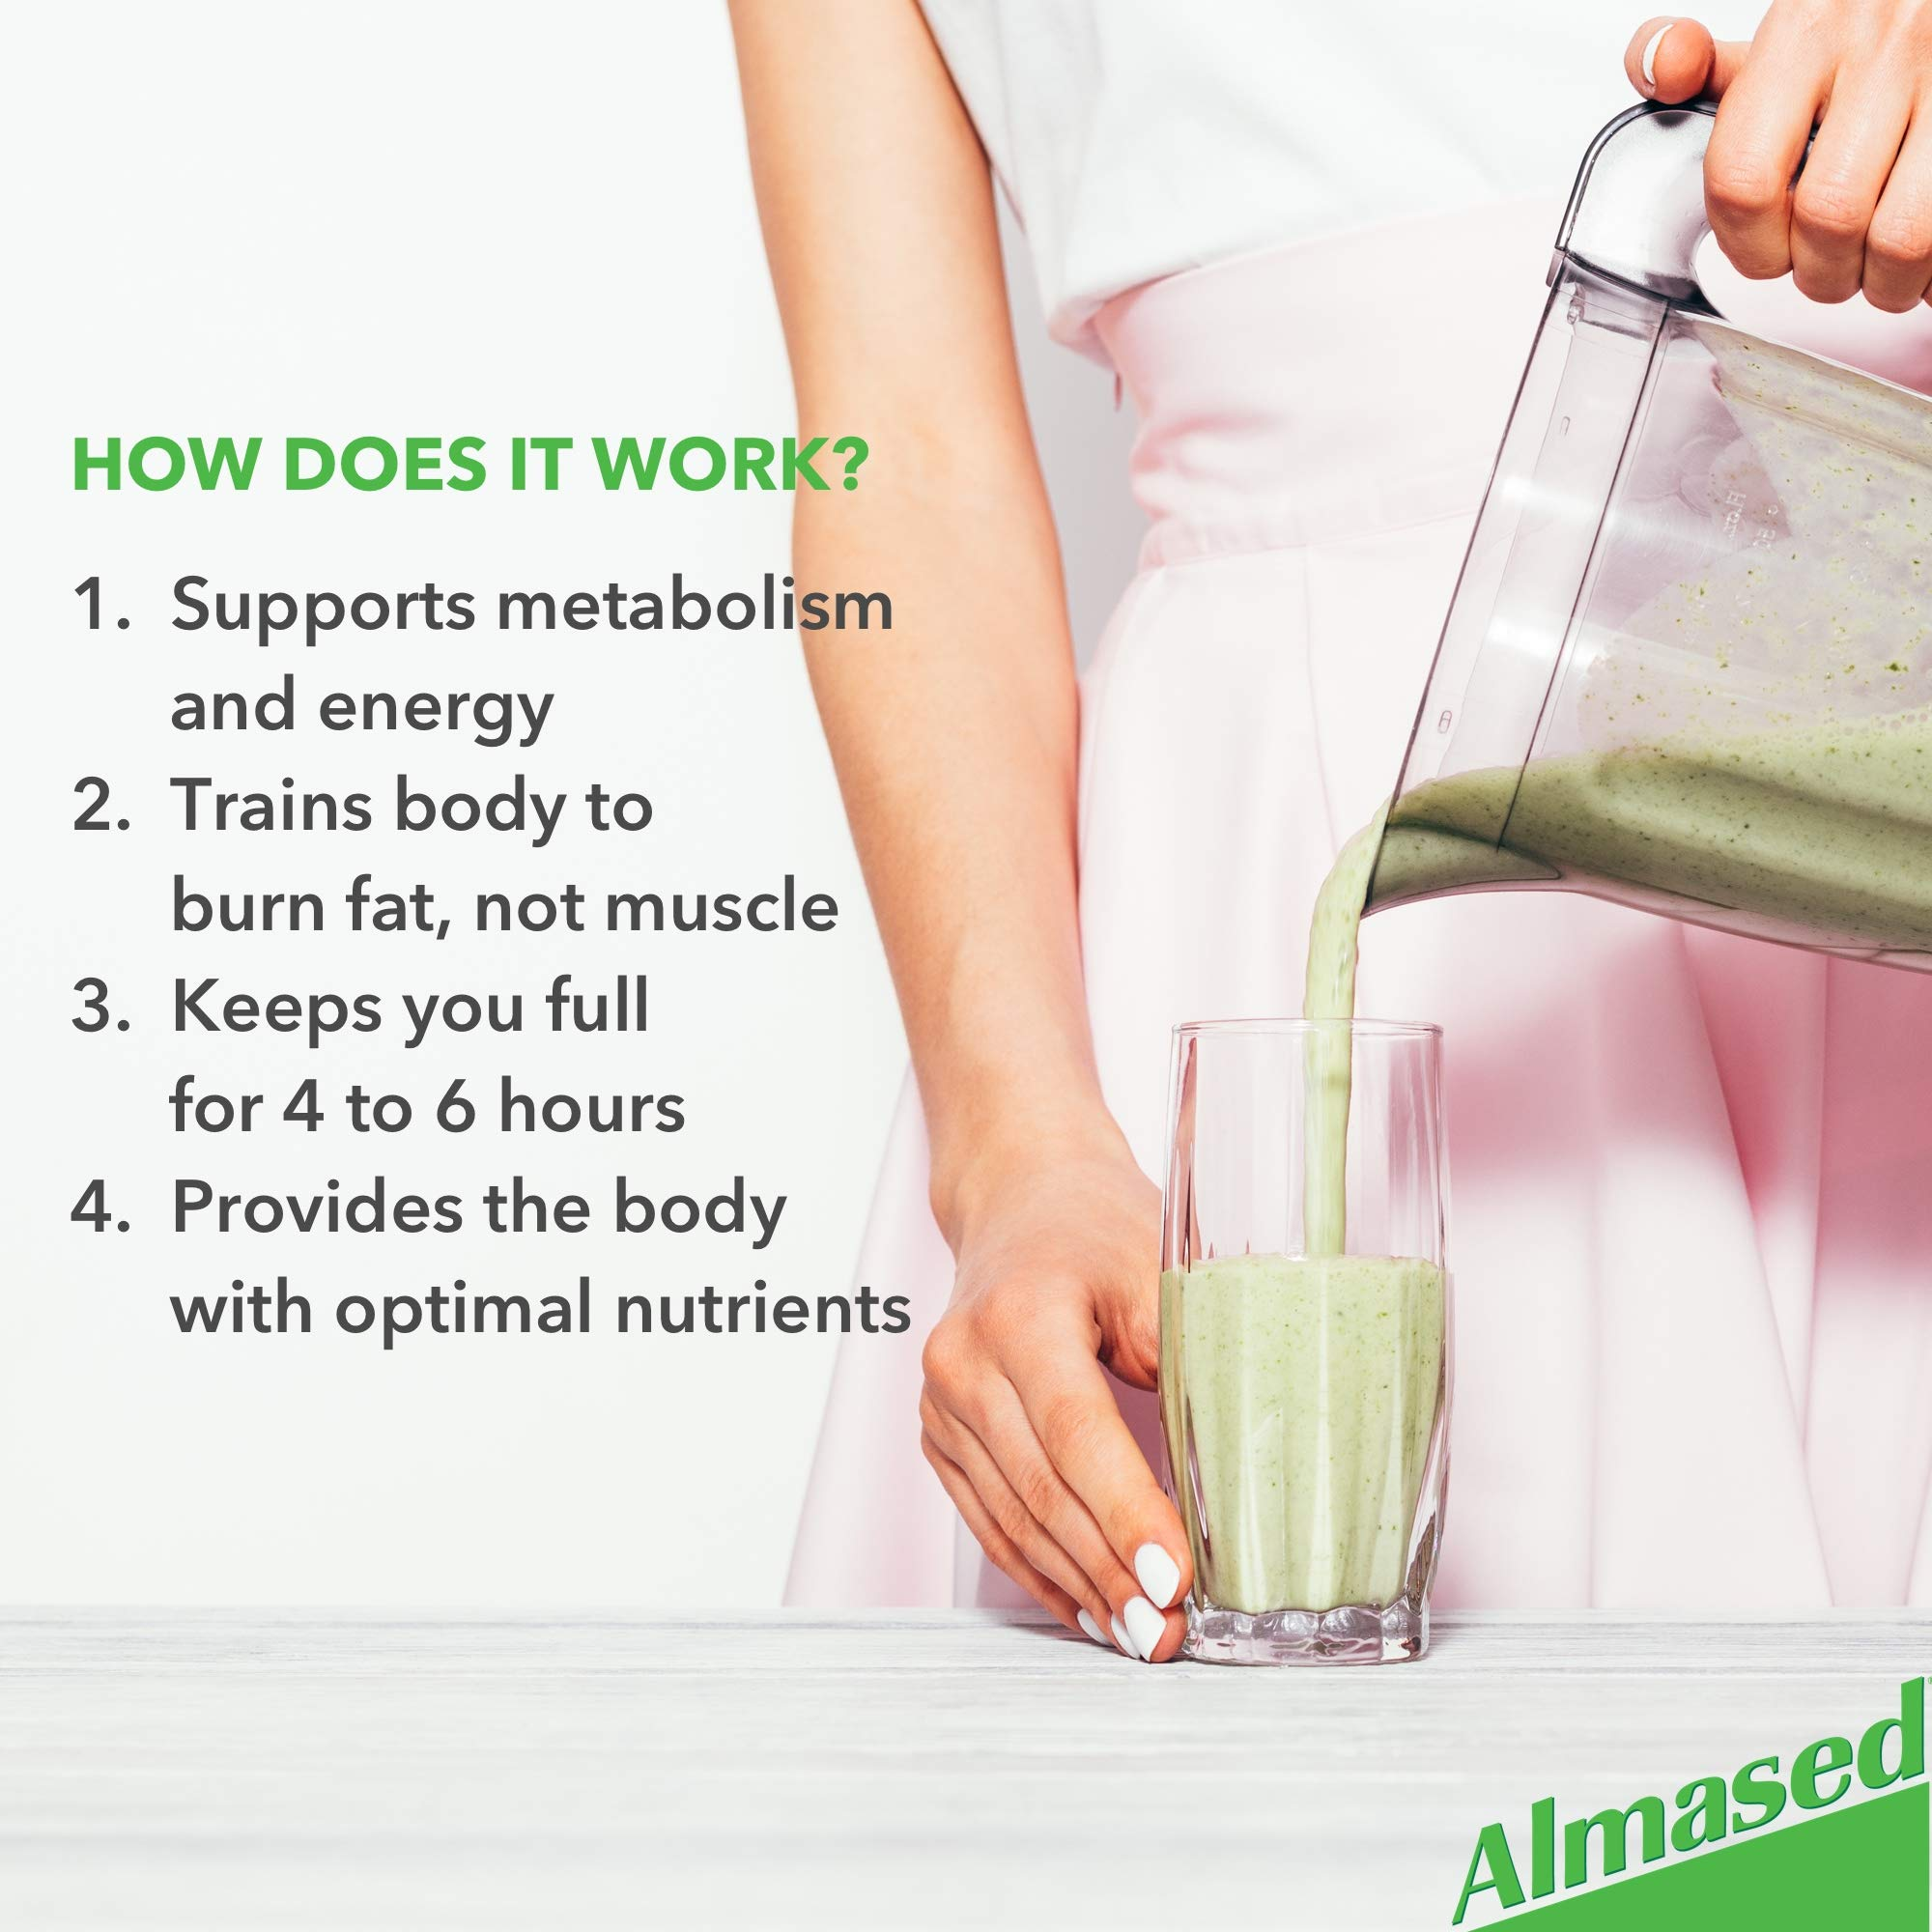 Almased Meal Replacement Shake (3 Pack) with Bonus Bamboo Spoon - 17.6 oz Powder - High Protein Weight Loss Drink, Fat Metabolism Booster - Vegetarian, Gluten Free - 30 Total Servings by Almased (Image #4)